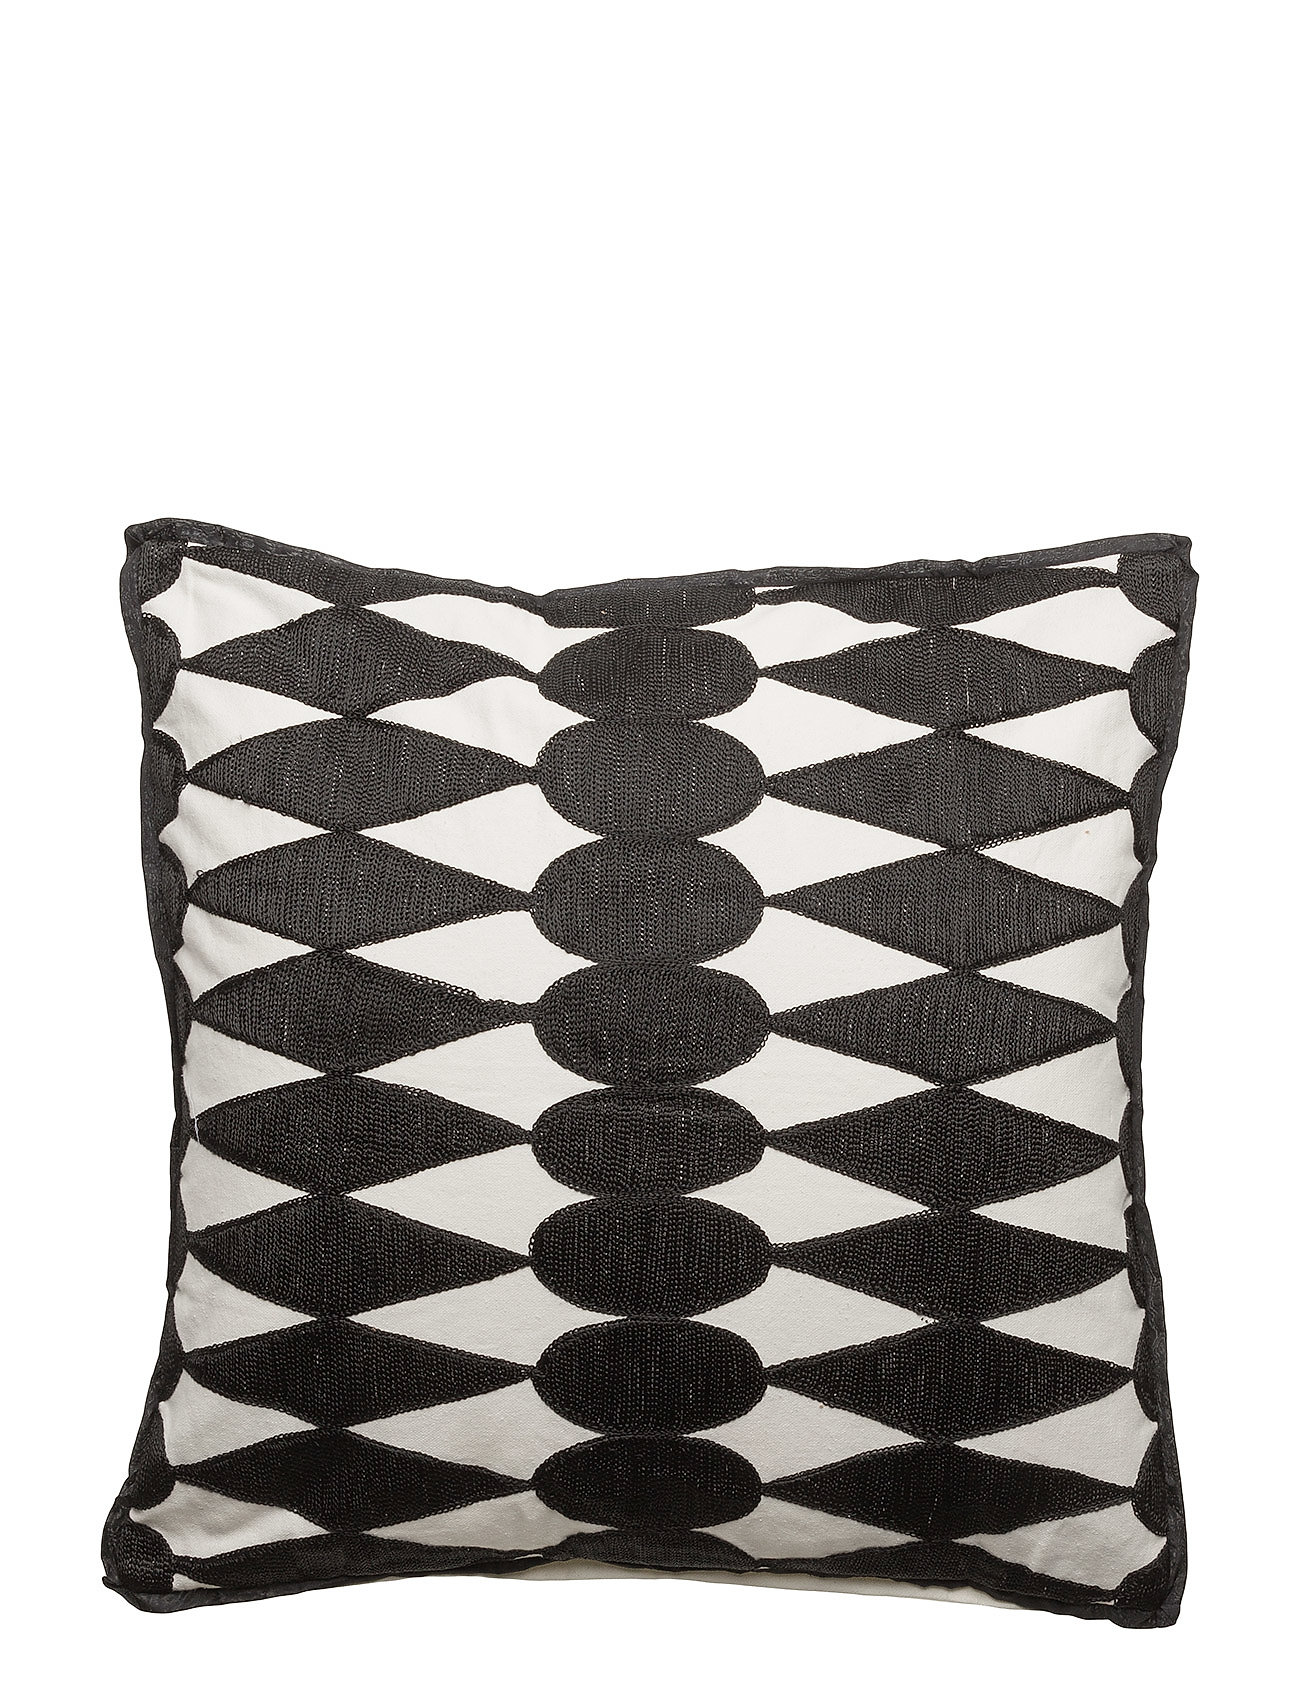 DAY Home Iman Cushion Cover - BLACK/ WHITE